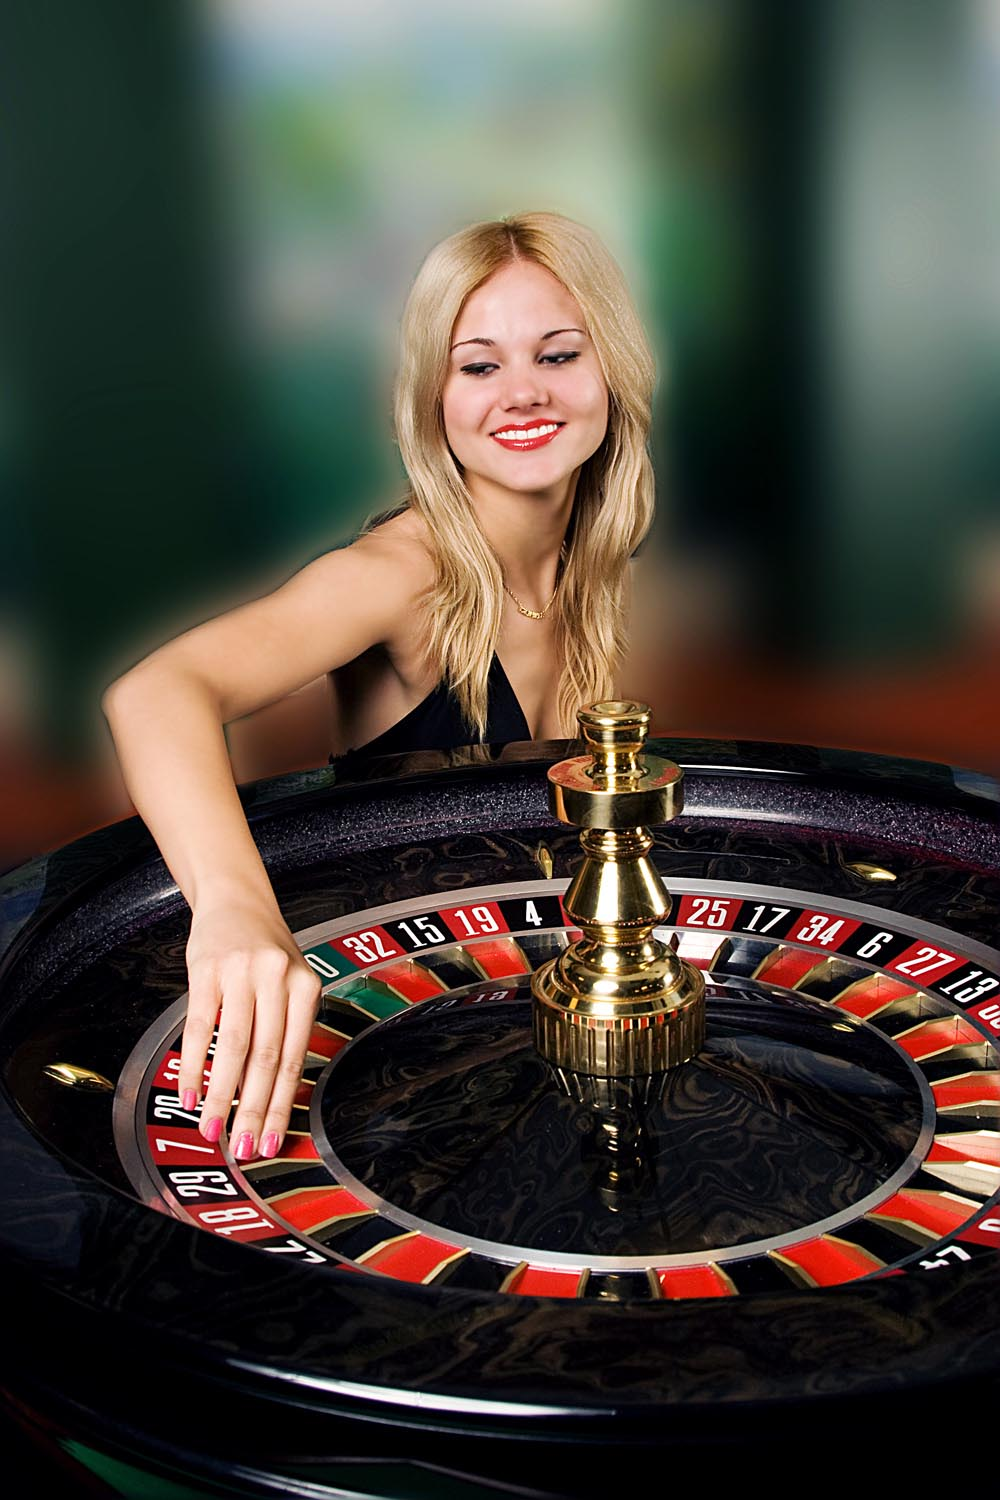 play casino online szilling hot